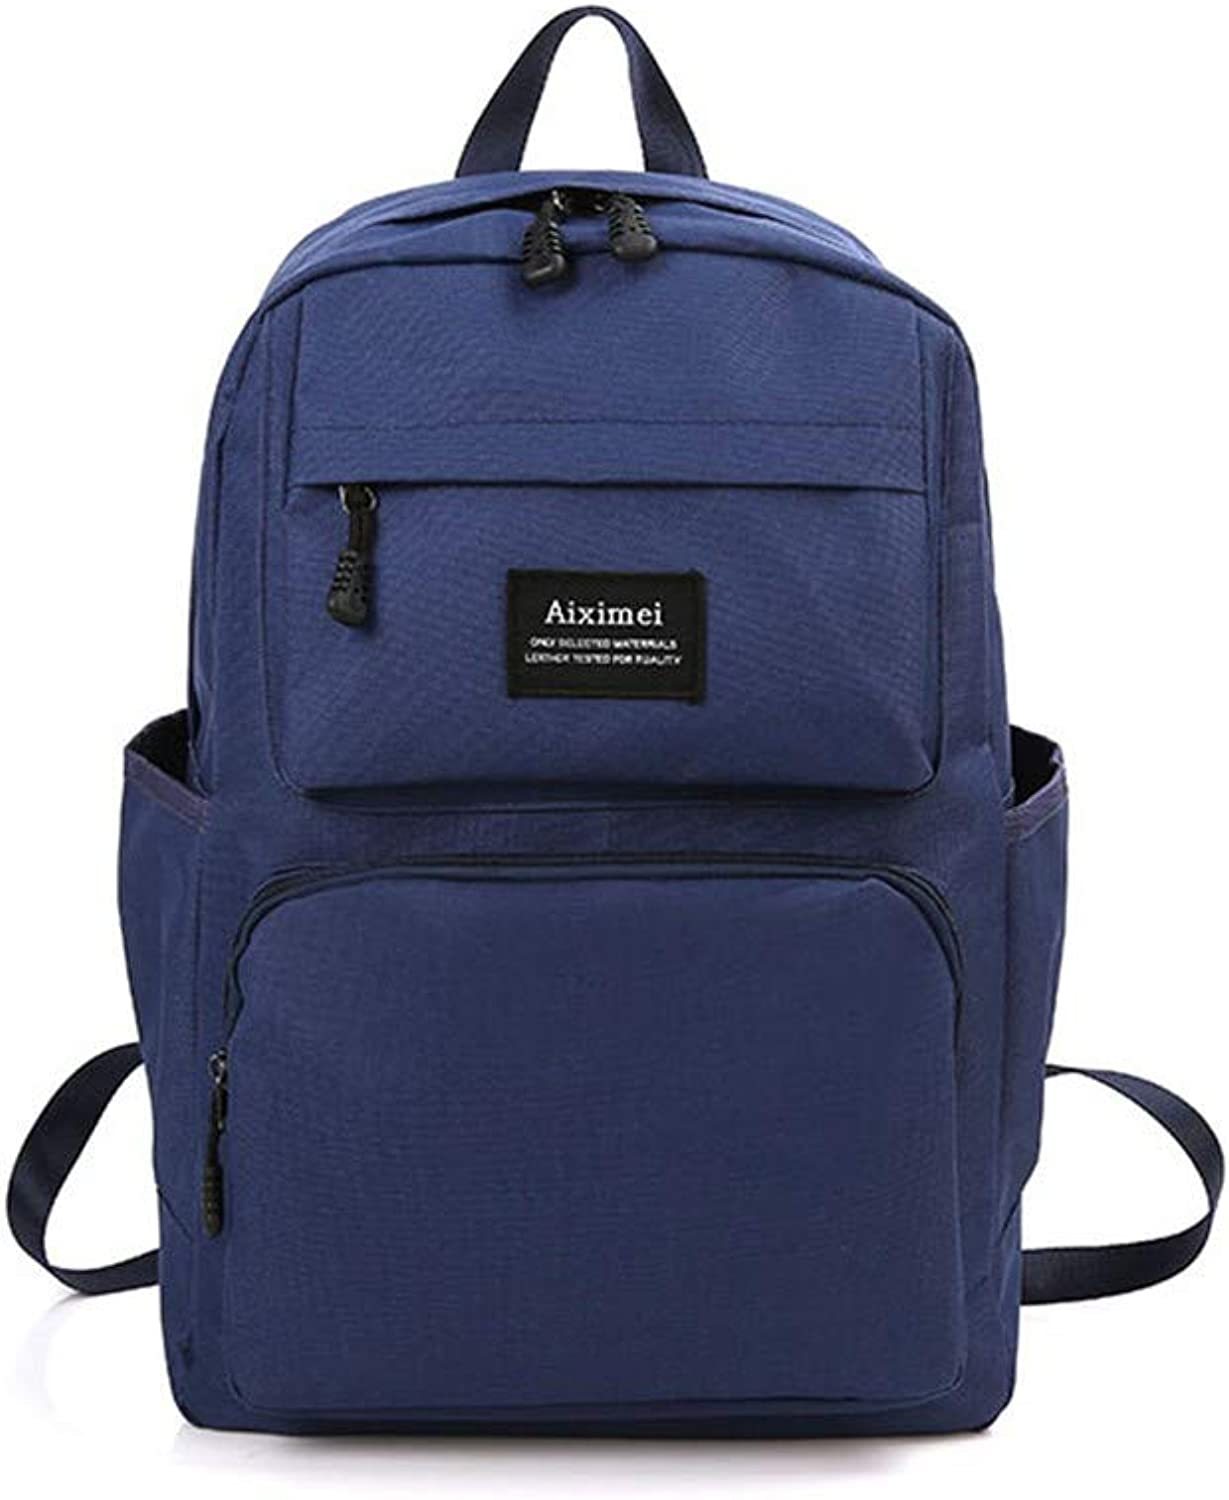 AUULANG Backpack Fashion Backpack Large Capacity Men and Women Backpack Outdoor Leisure Bag, Dark blueee